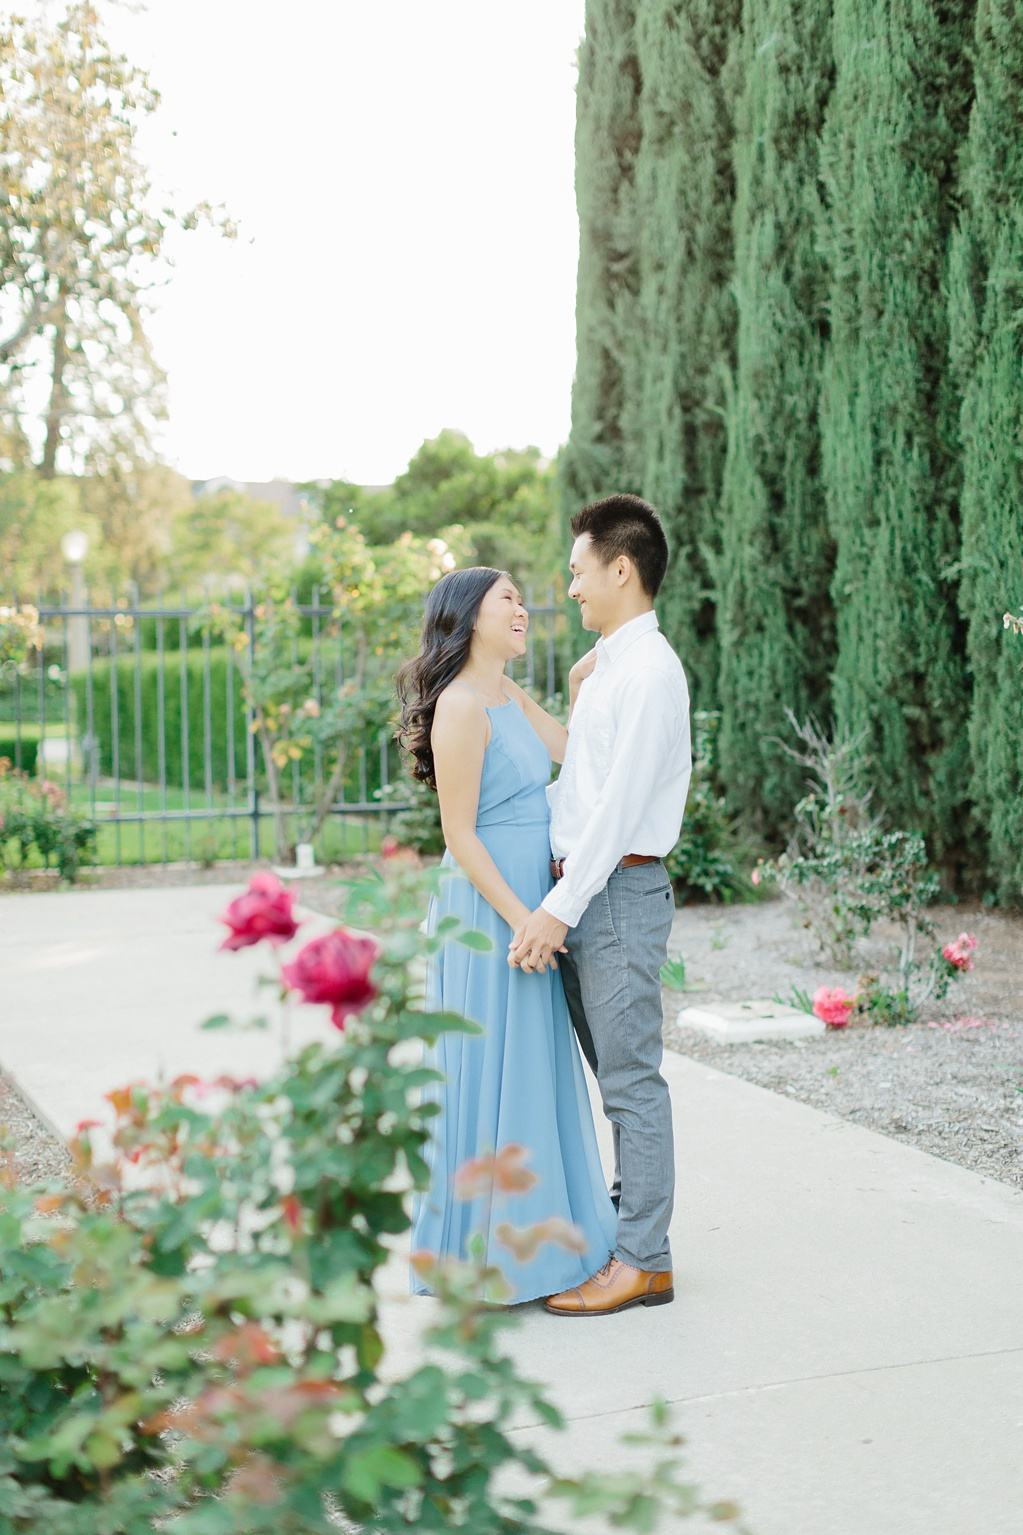 Elegant rose garden engagement shoot at Lacy Park in Pasadena by LA wedding photographer-Madison Ellis Photography (59)